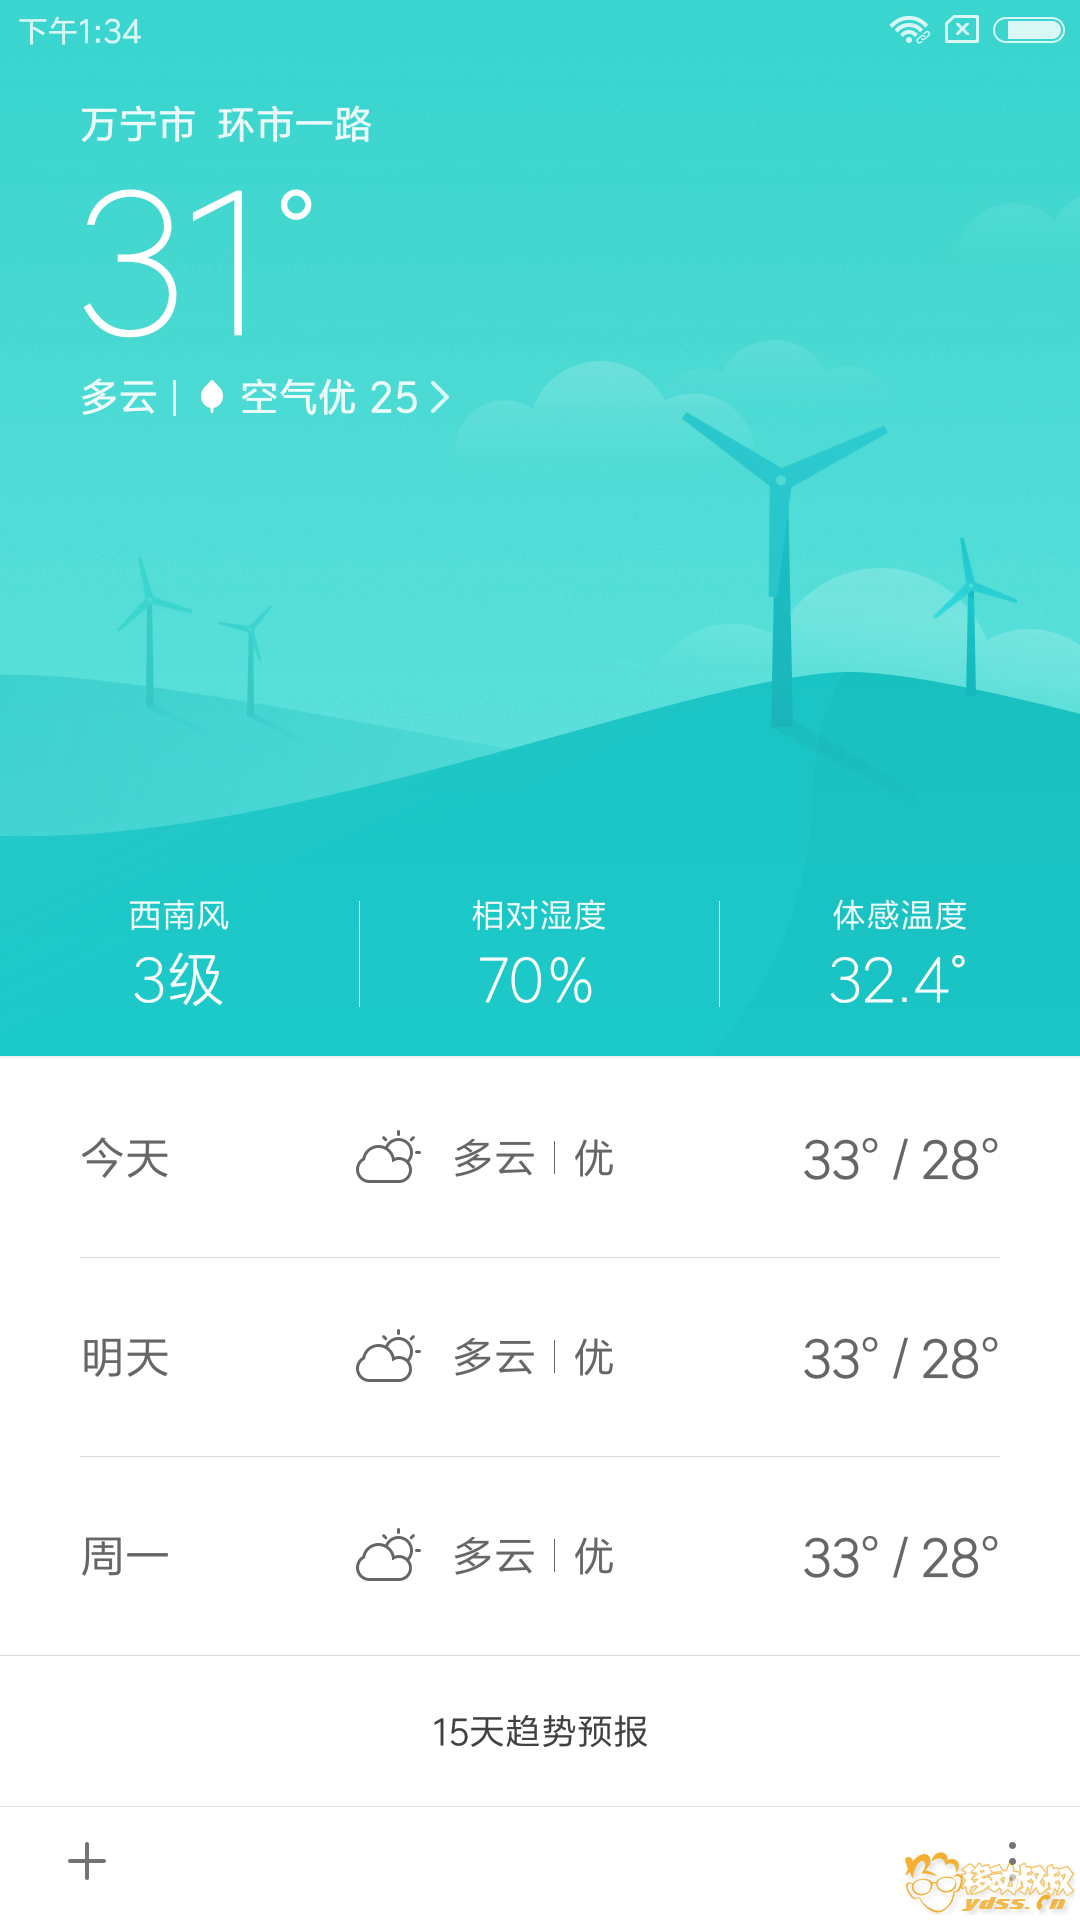 Screenshot_2017-08-12-13-34-21-192_com.miui.weather2.png